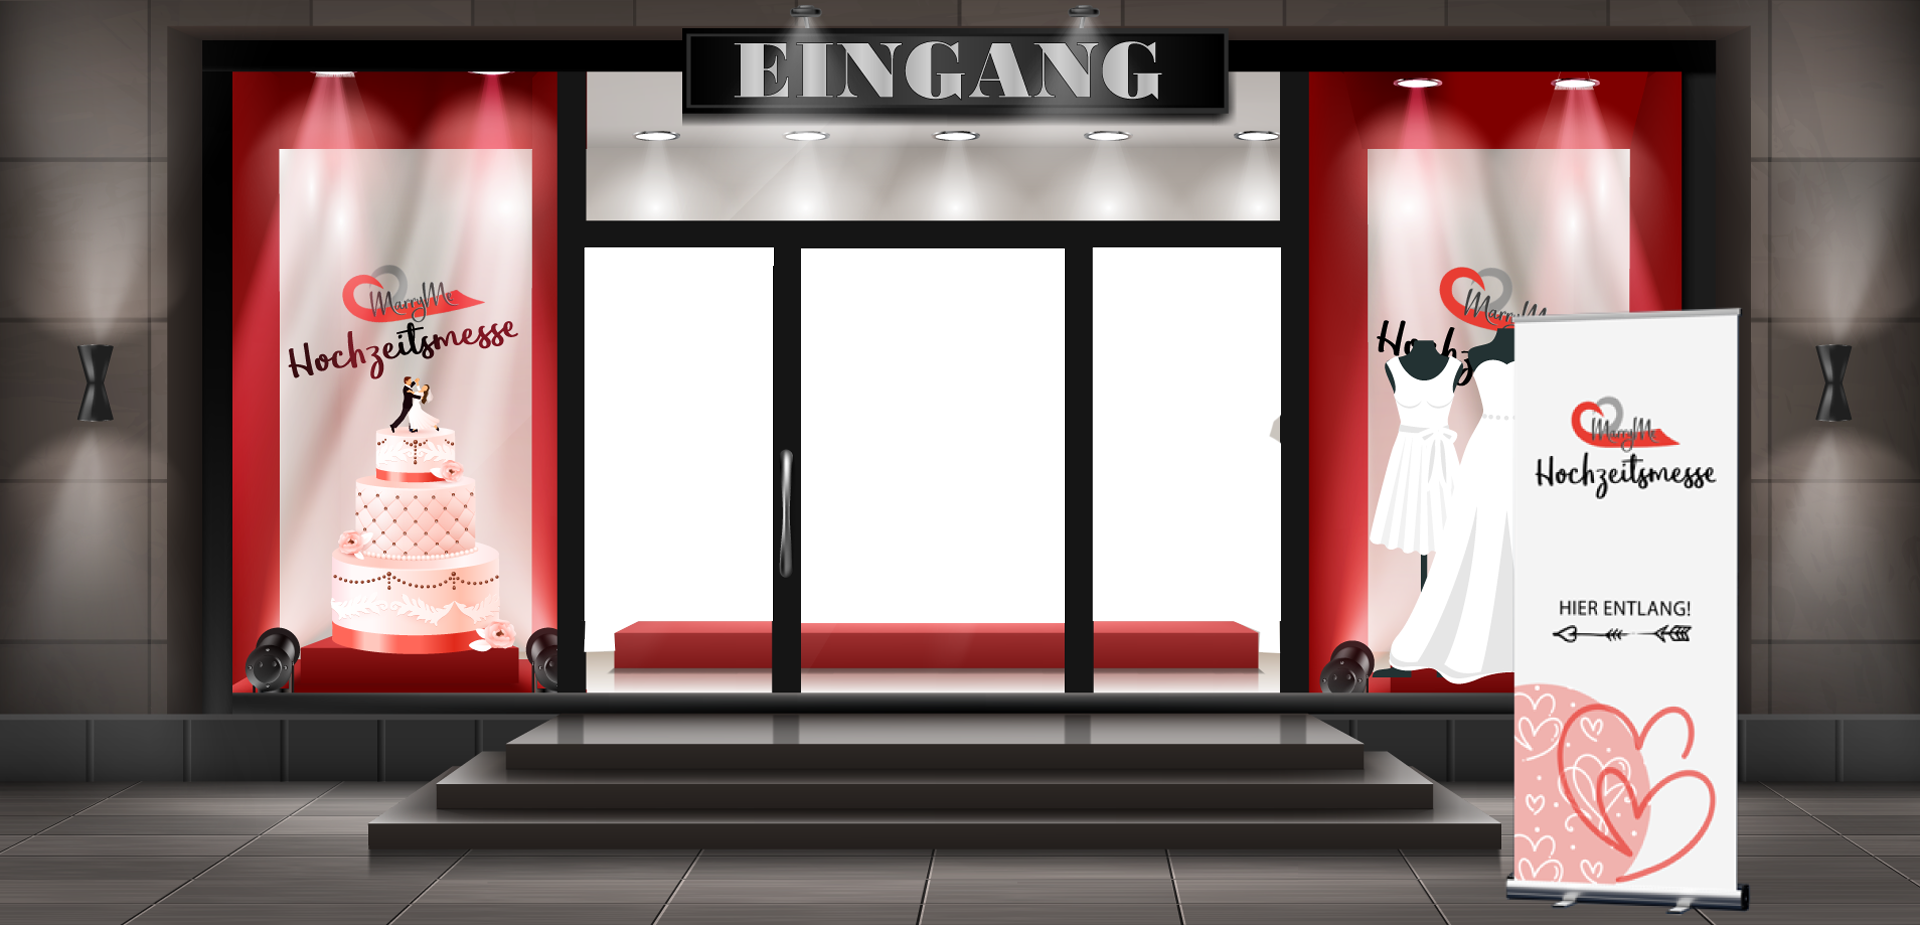 Eingang_Fenster_1